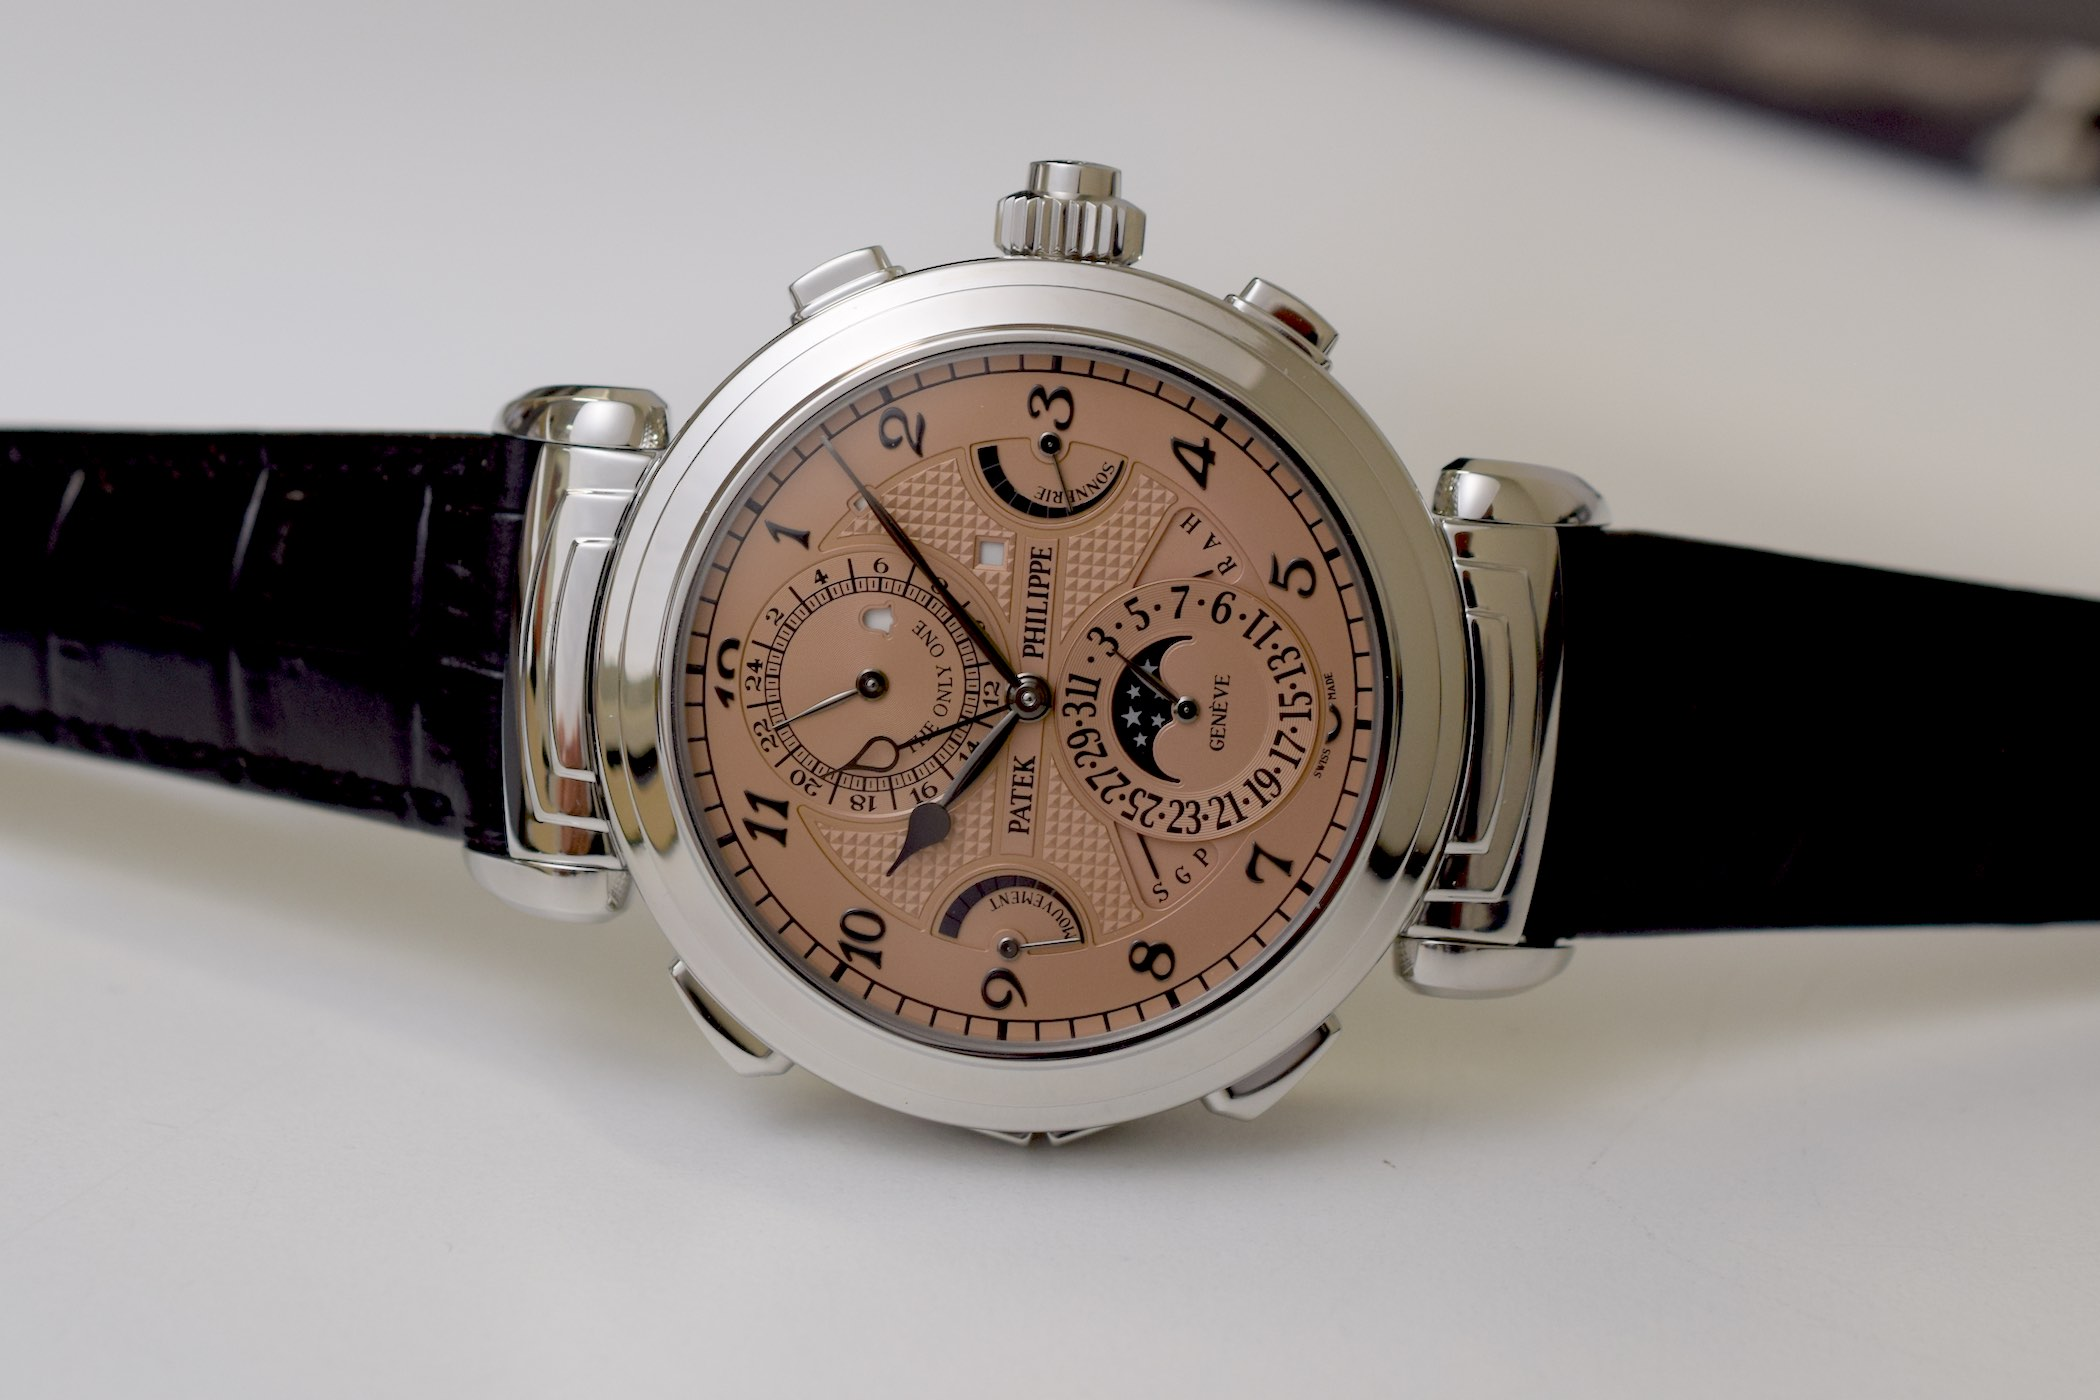 Patek Philippe 6300A Steel Only Watch 2019 - Most Expensive Watch Ever Auctioned